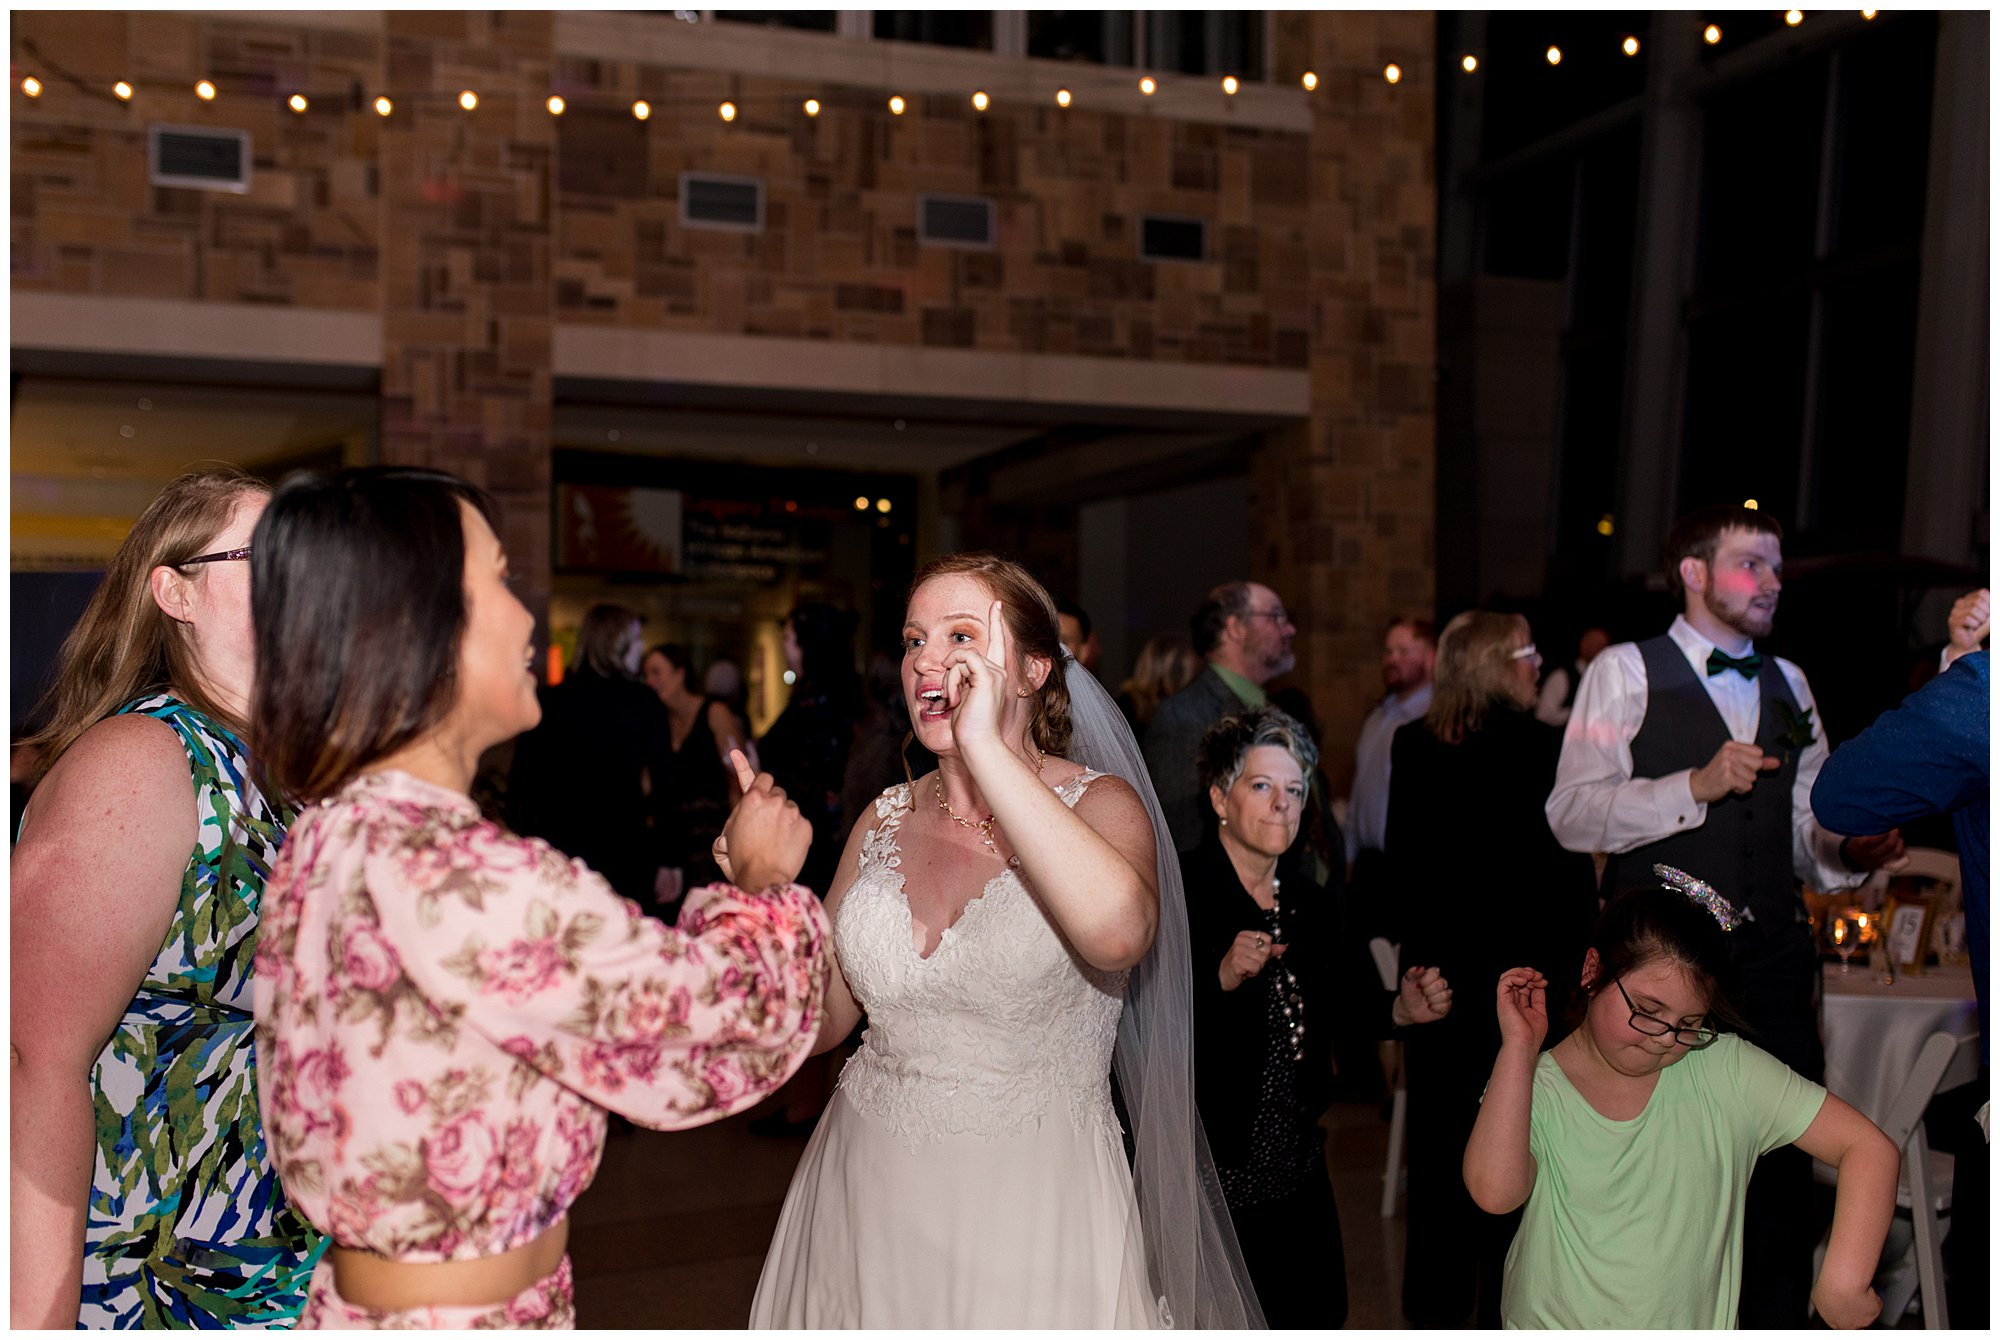 bride dances at wedding reception in downtown Indianapolis with guests